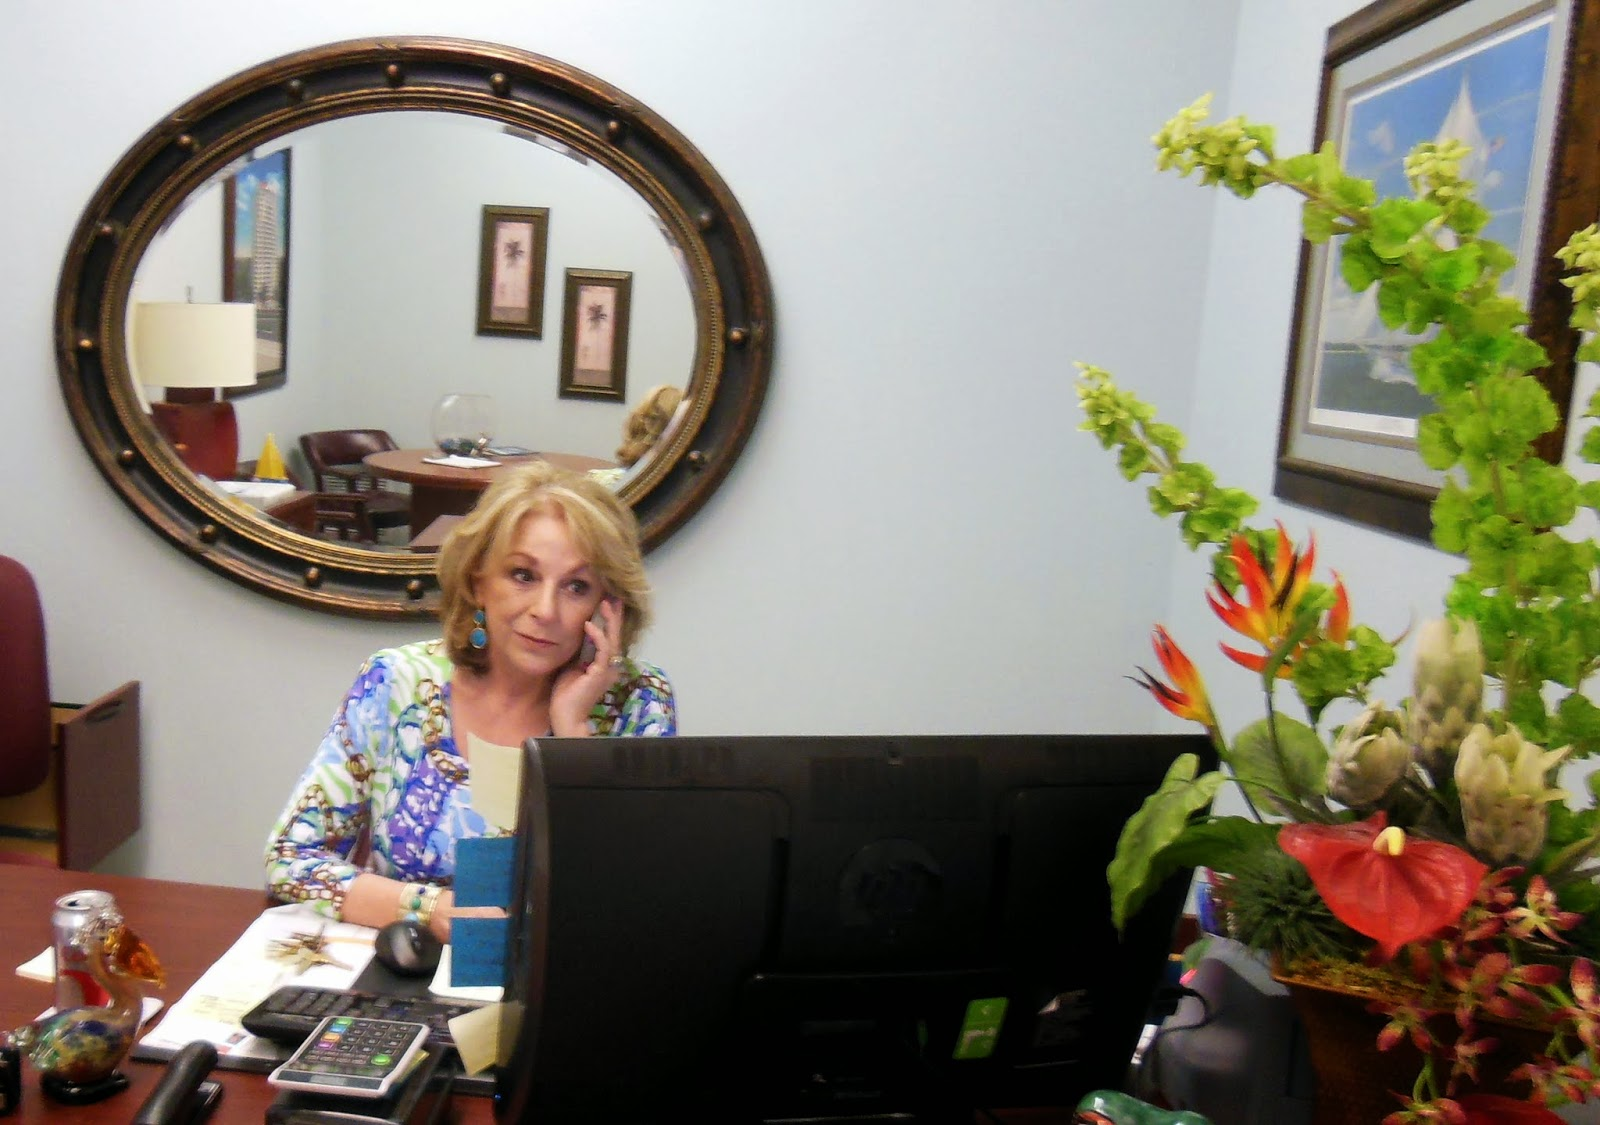 hoa office. First Day For Our New Property Manager And HOA Office Hoa +